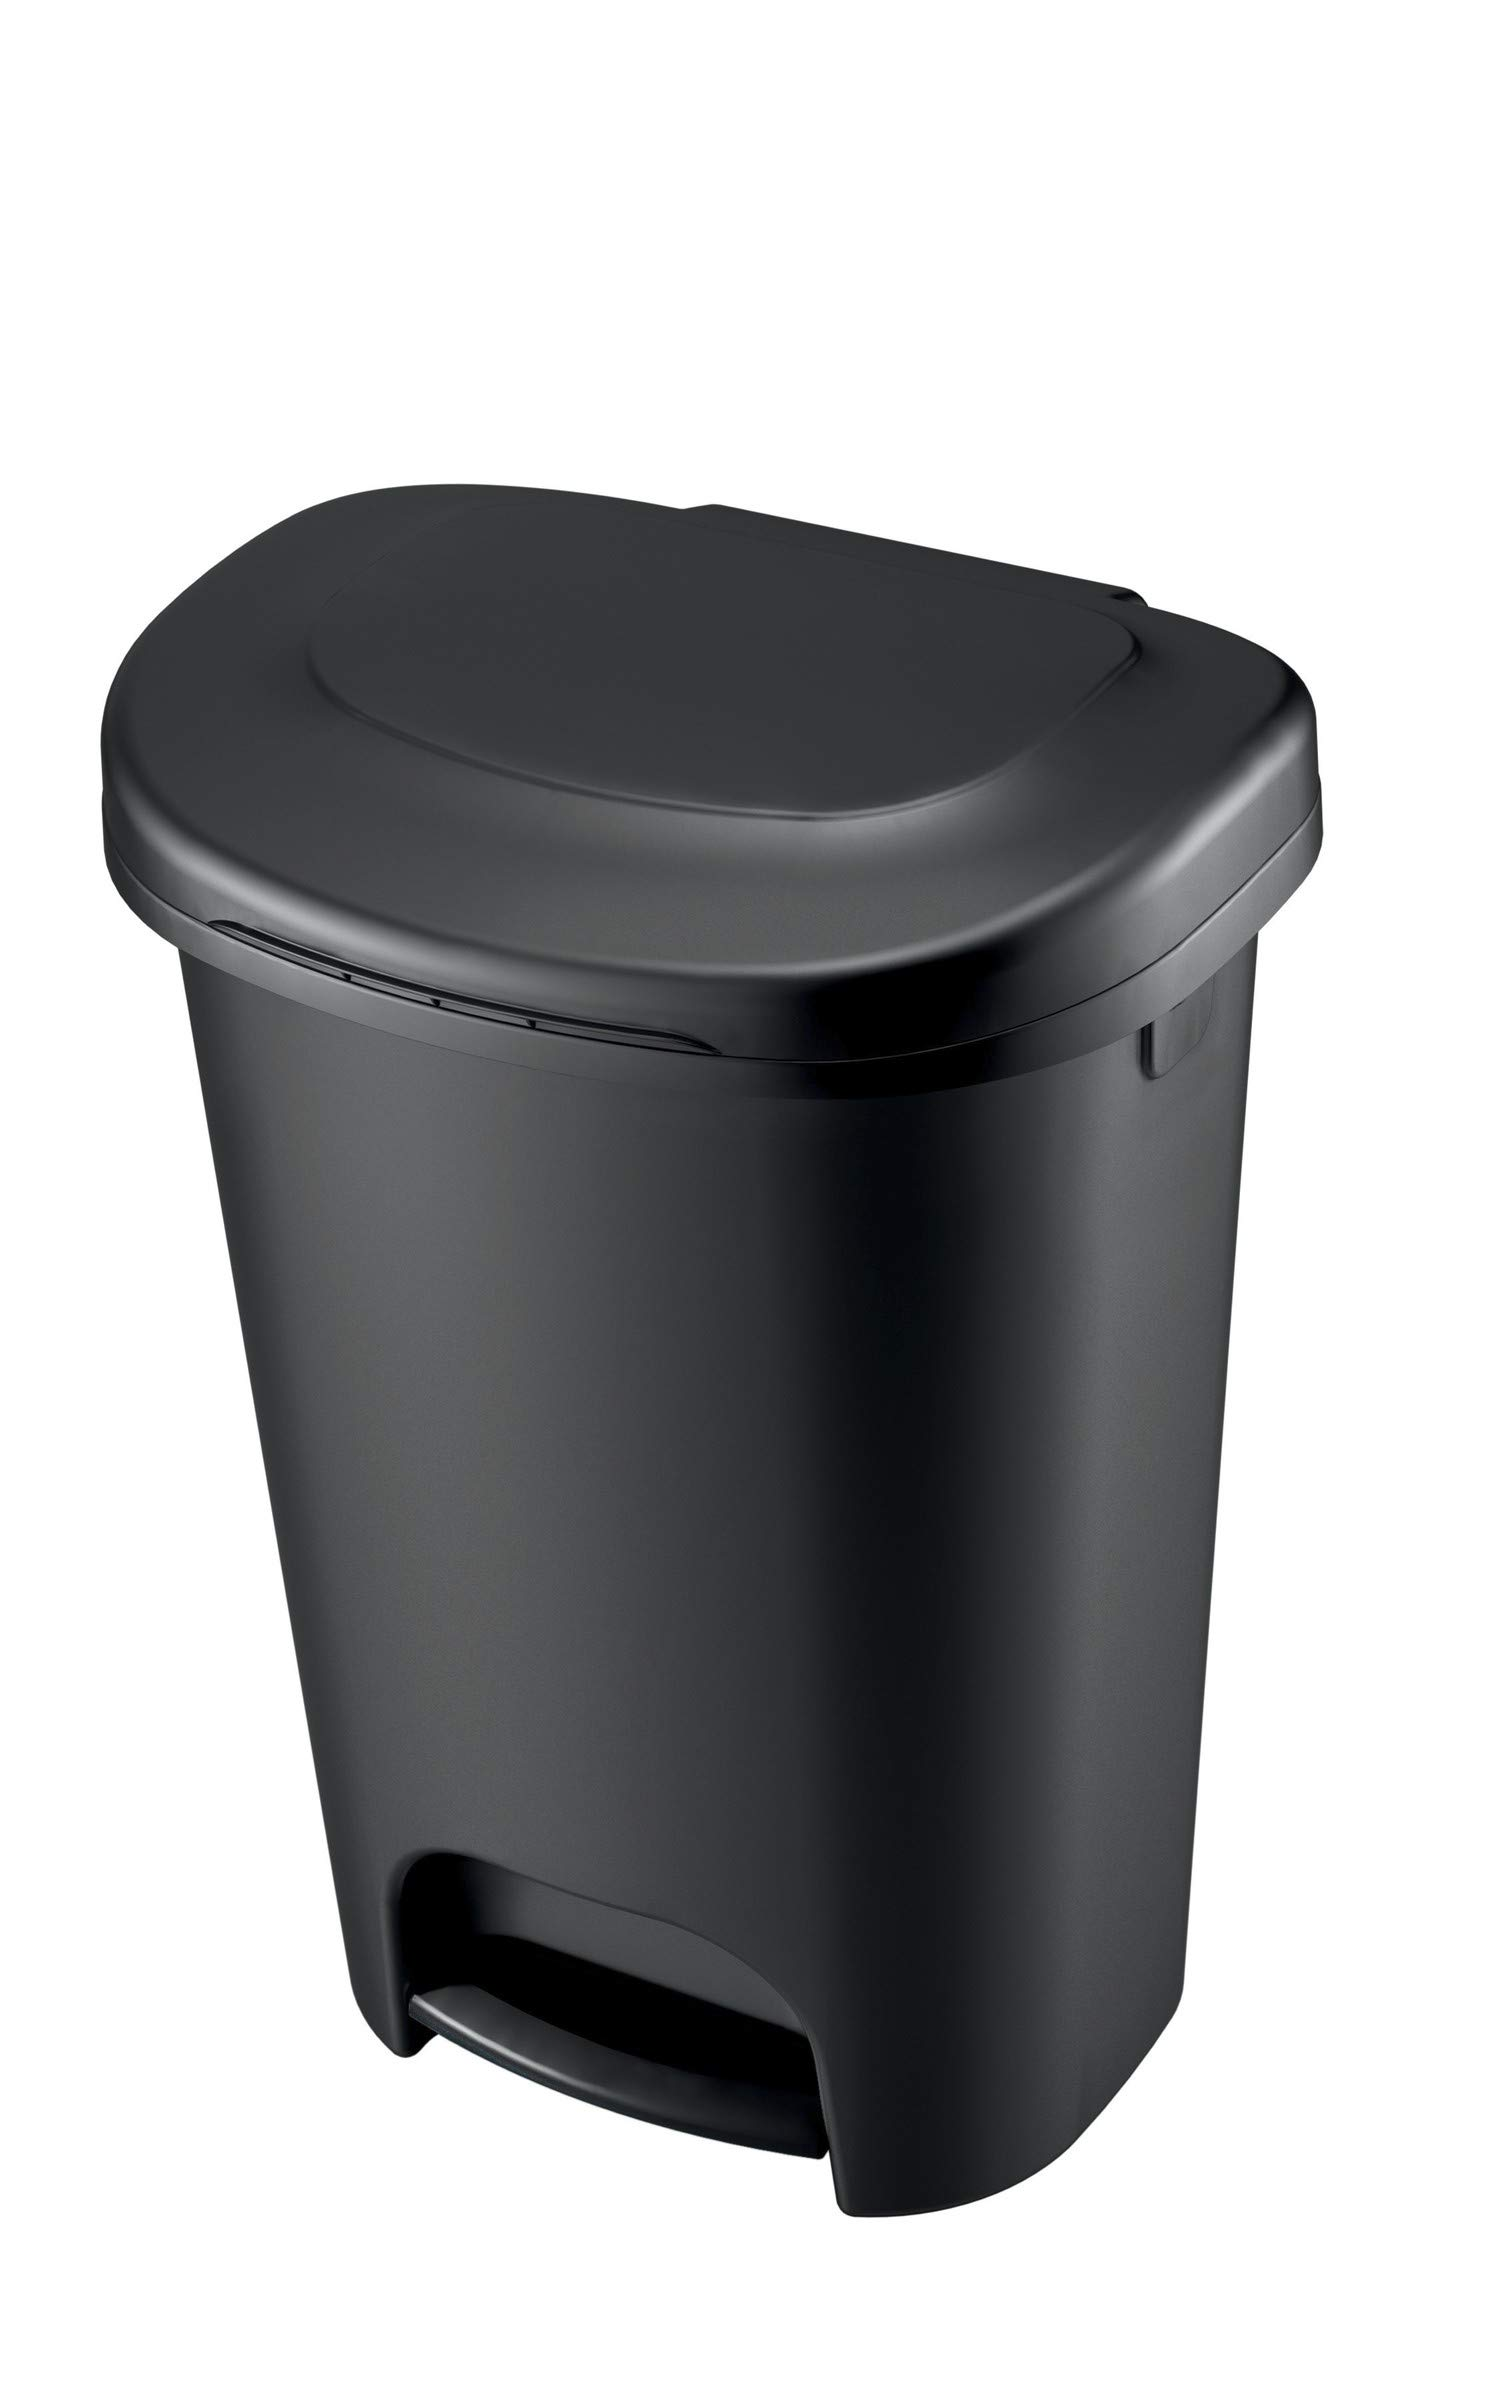 Rubbermaid 1843028 Step-On Wastebasket, 13-Gallon, Black by Rubbermaid